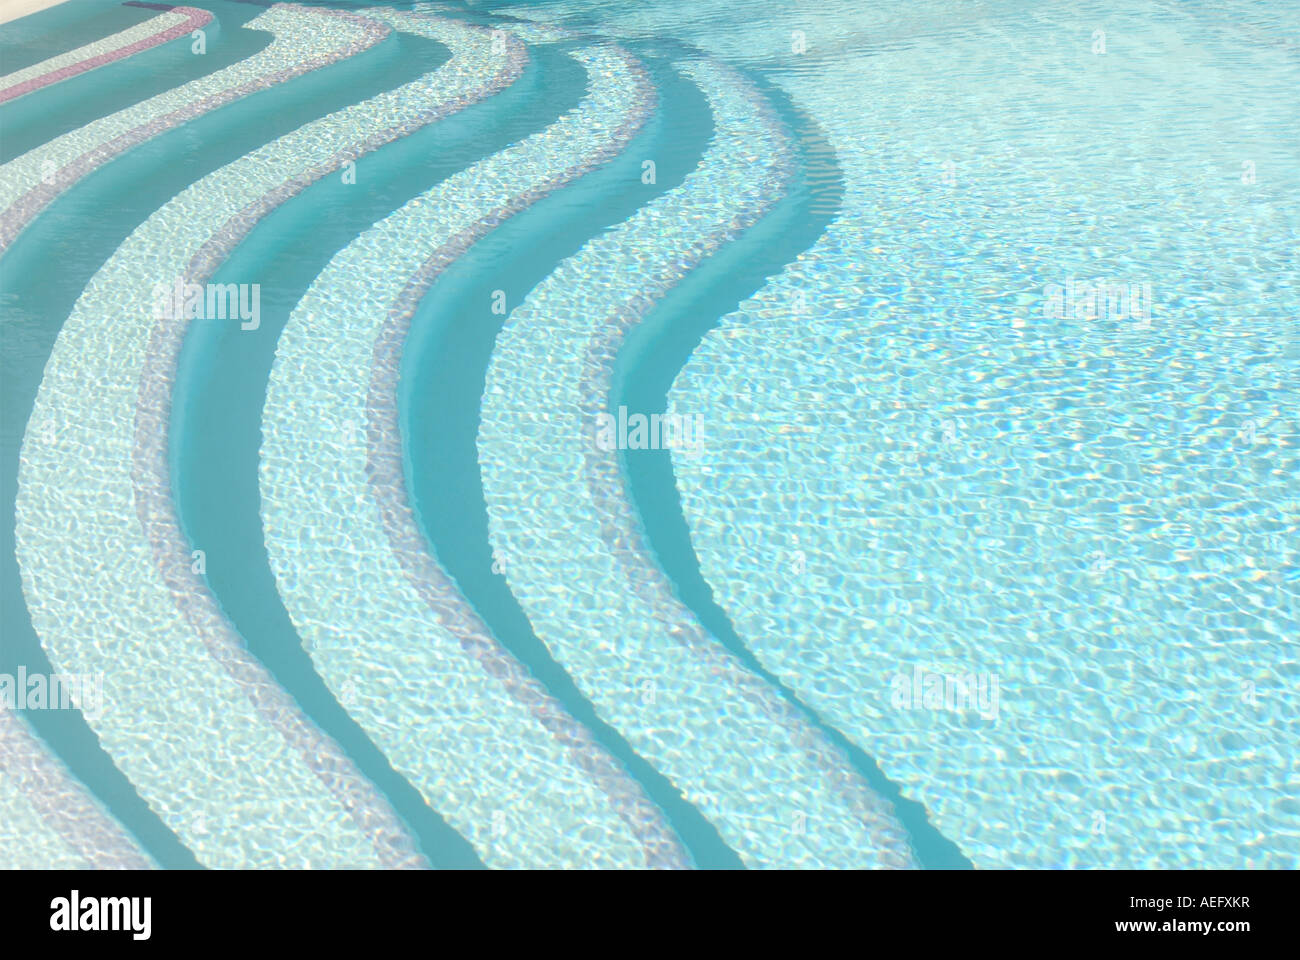 Contemporary patterned bold image of swimming pool steps seen above the water Stock Photo